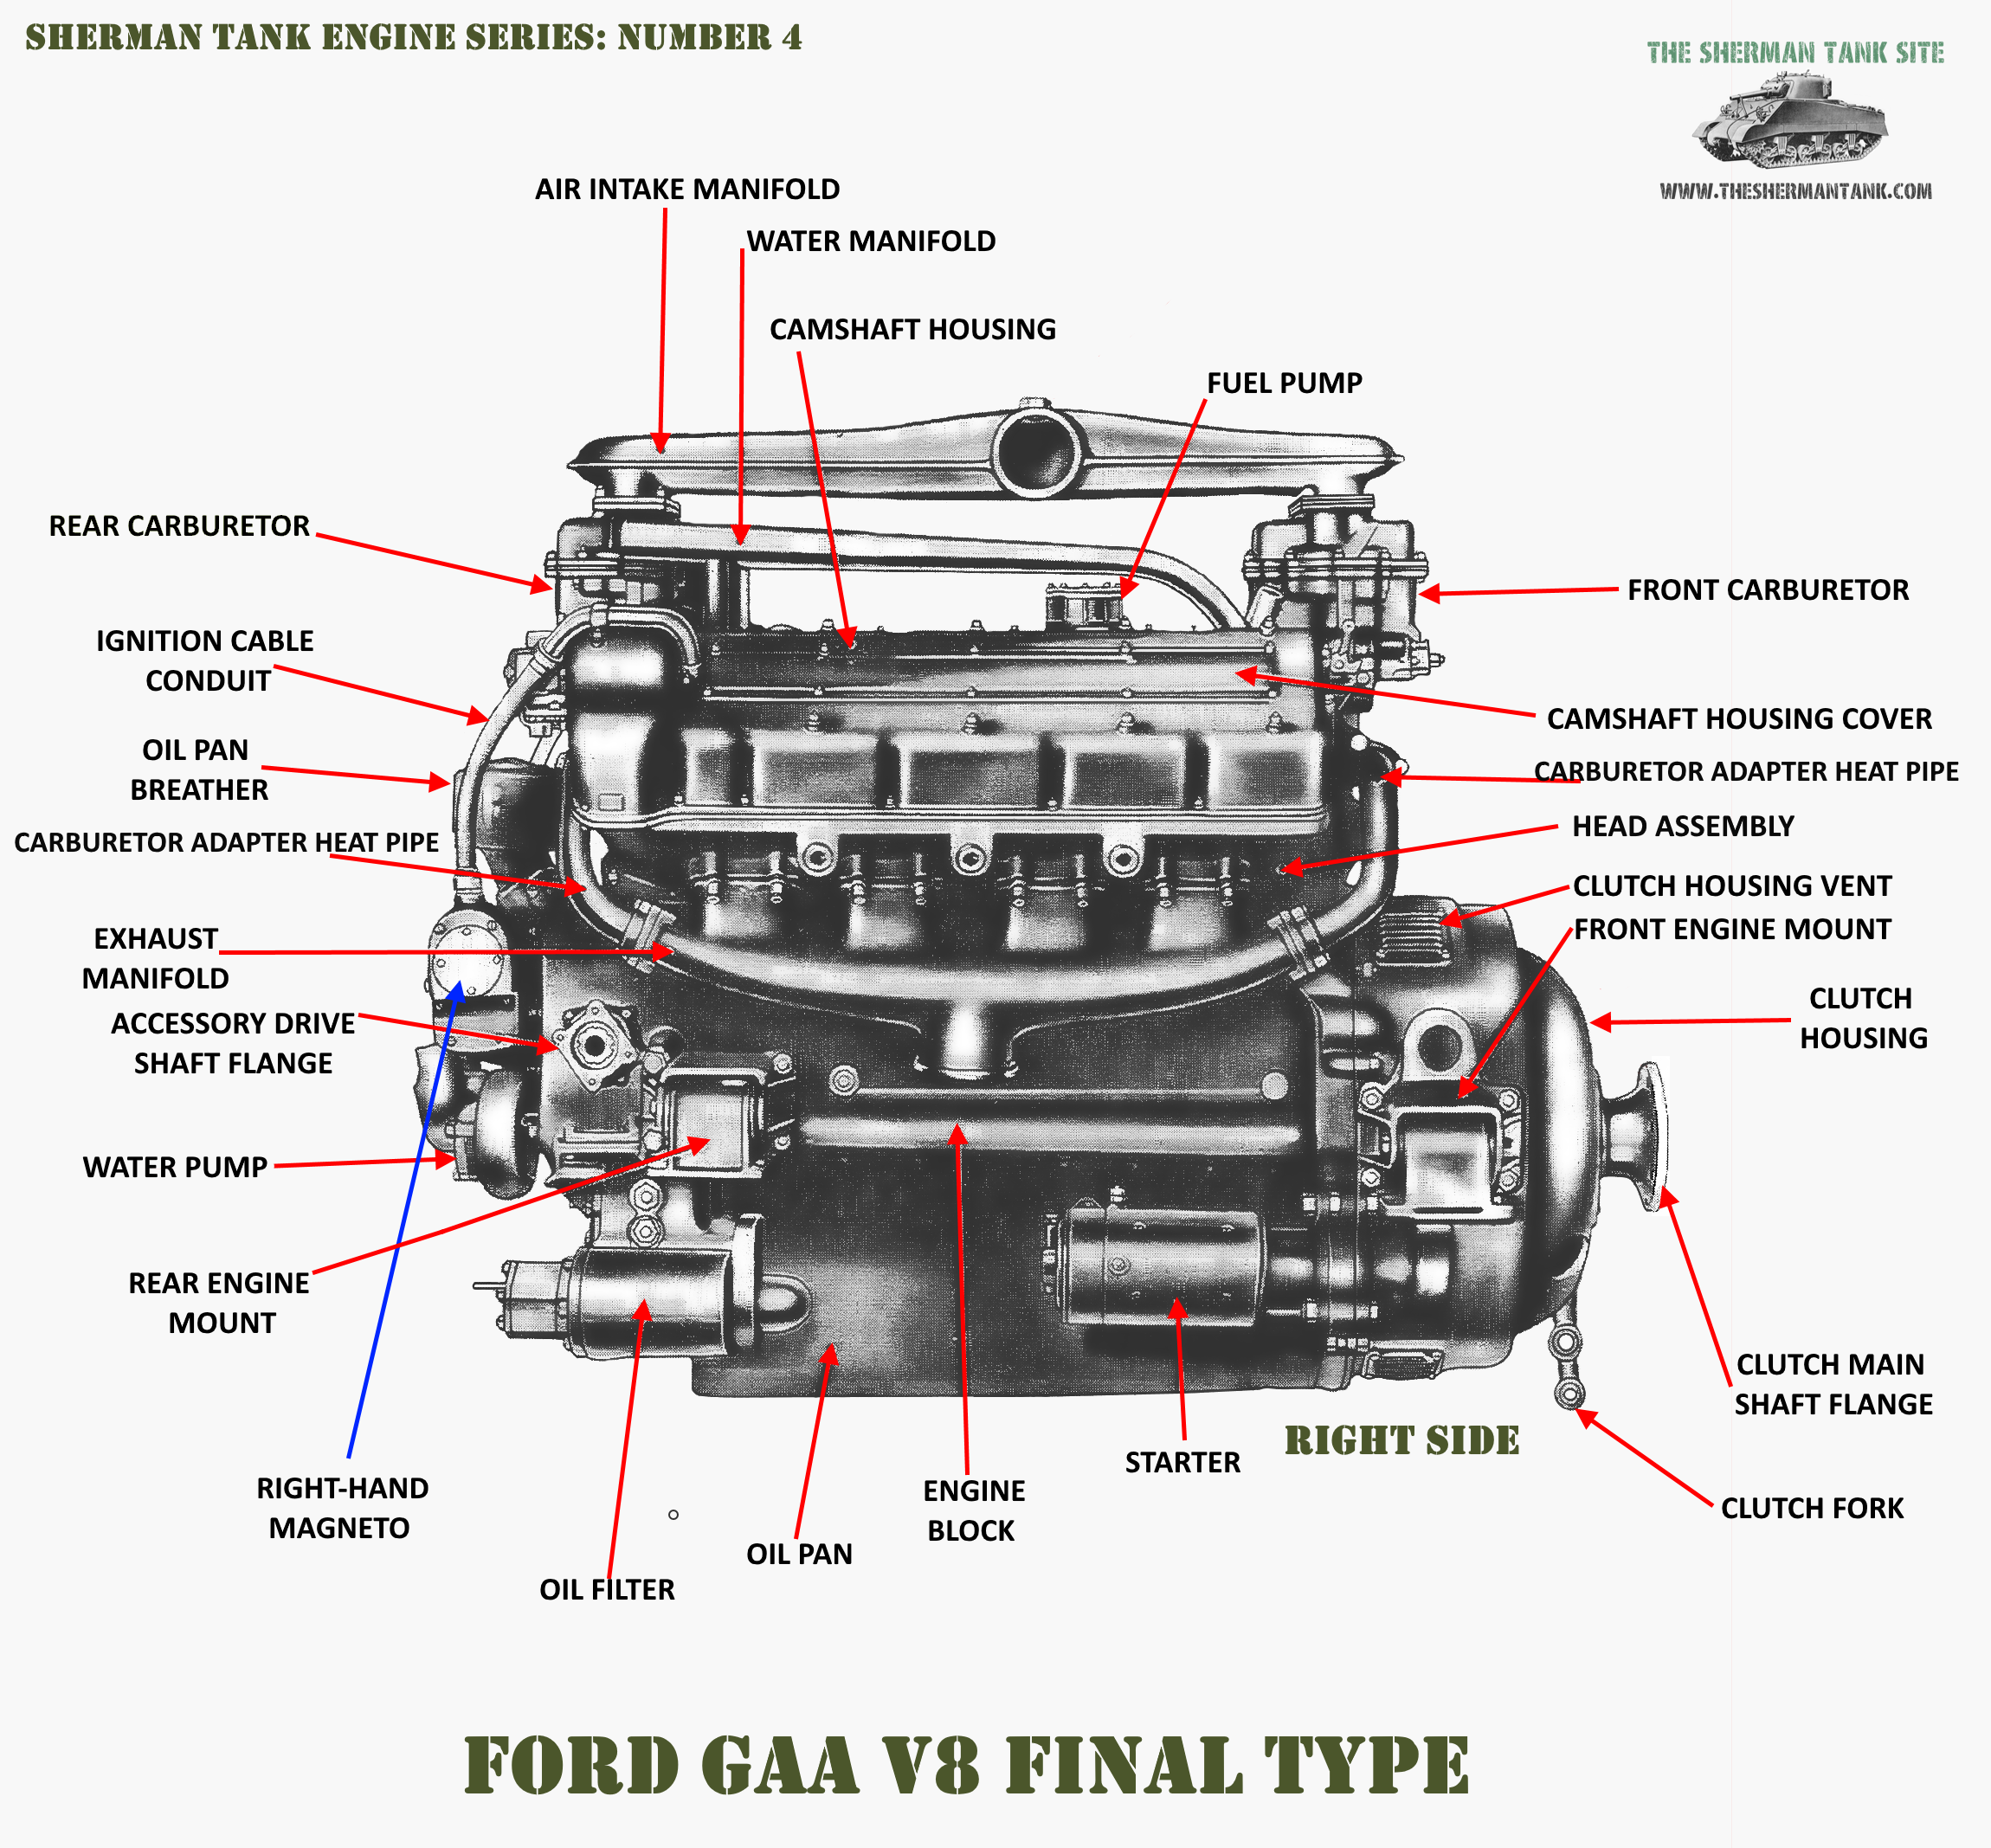 The Ford Gaa Data Page More Info And Technical Drawings Manual Tank Engine Diagram Army Would Produce Several Other Gas Powered Engines But None Really Shine Like This One Did In Sherman